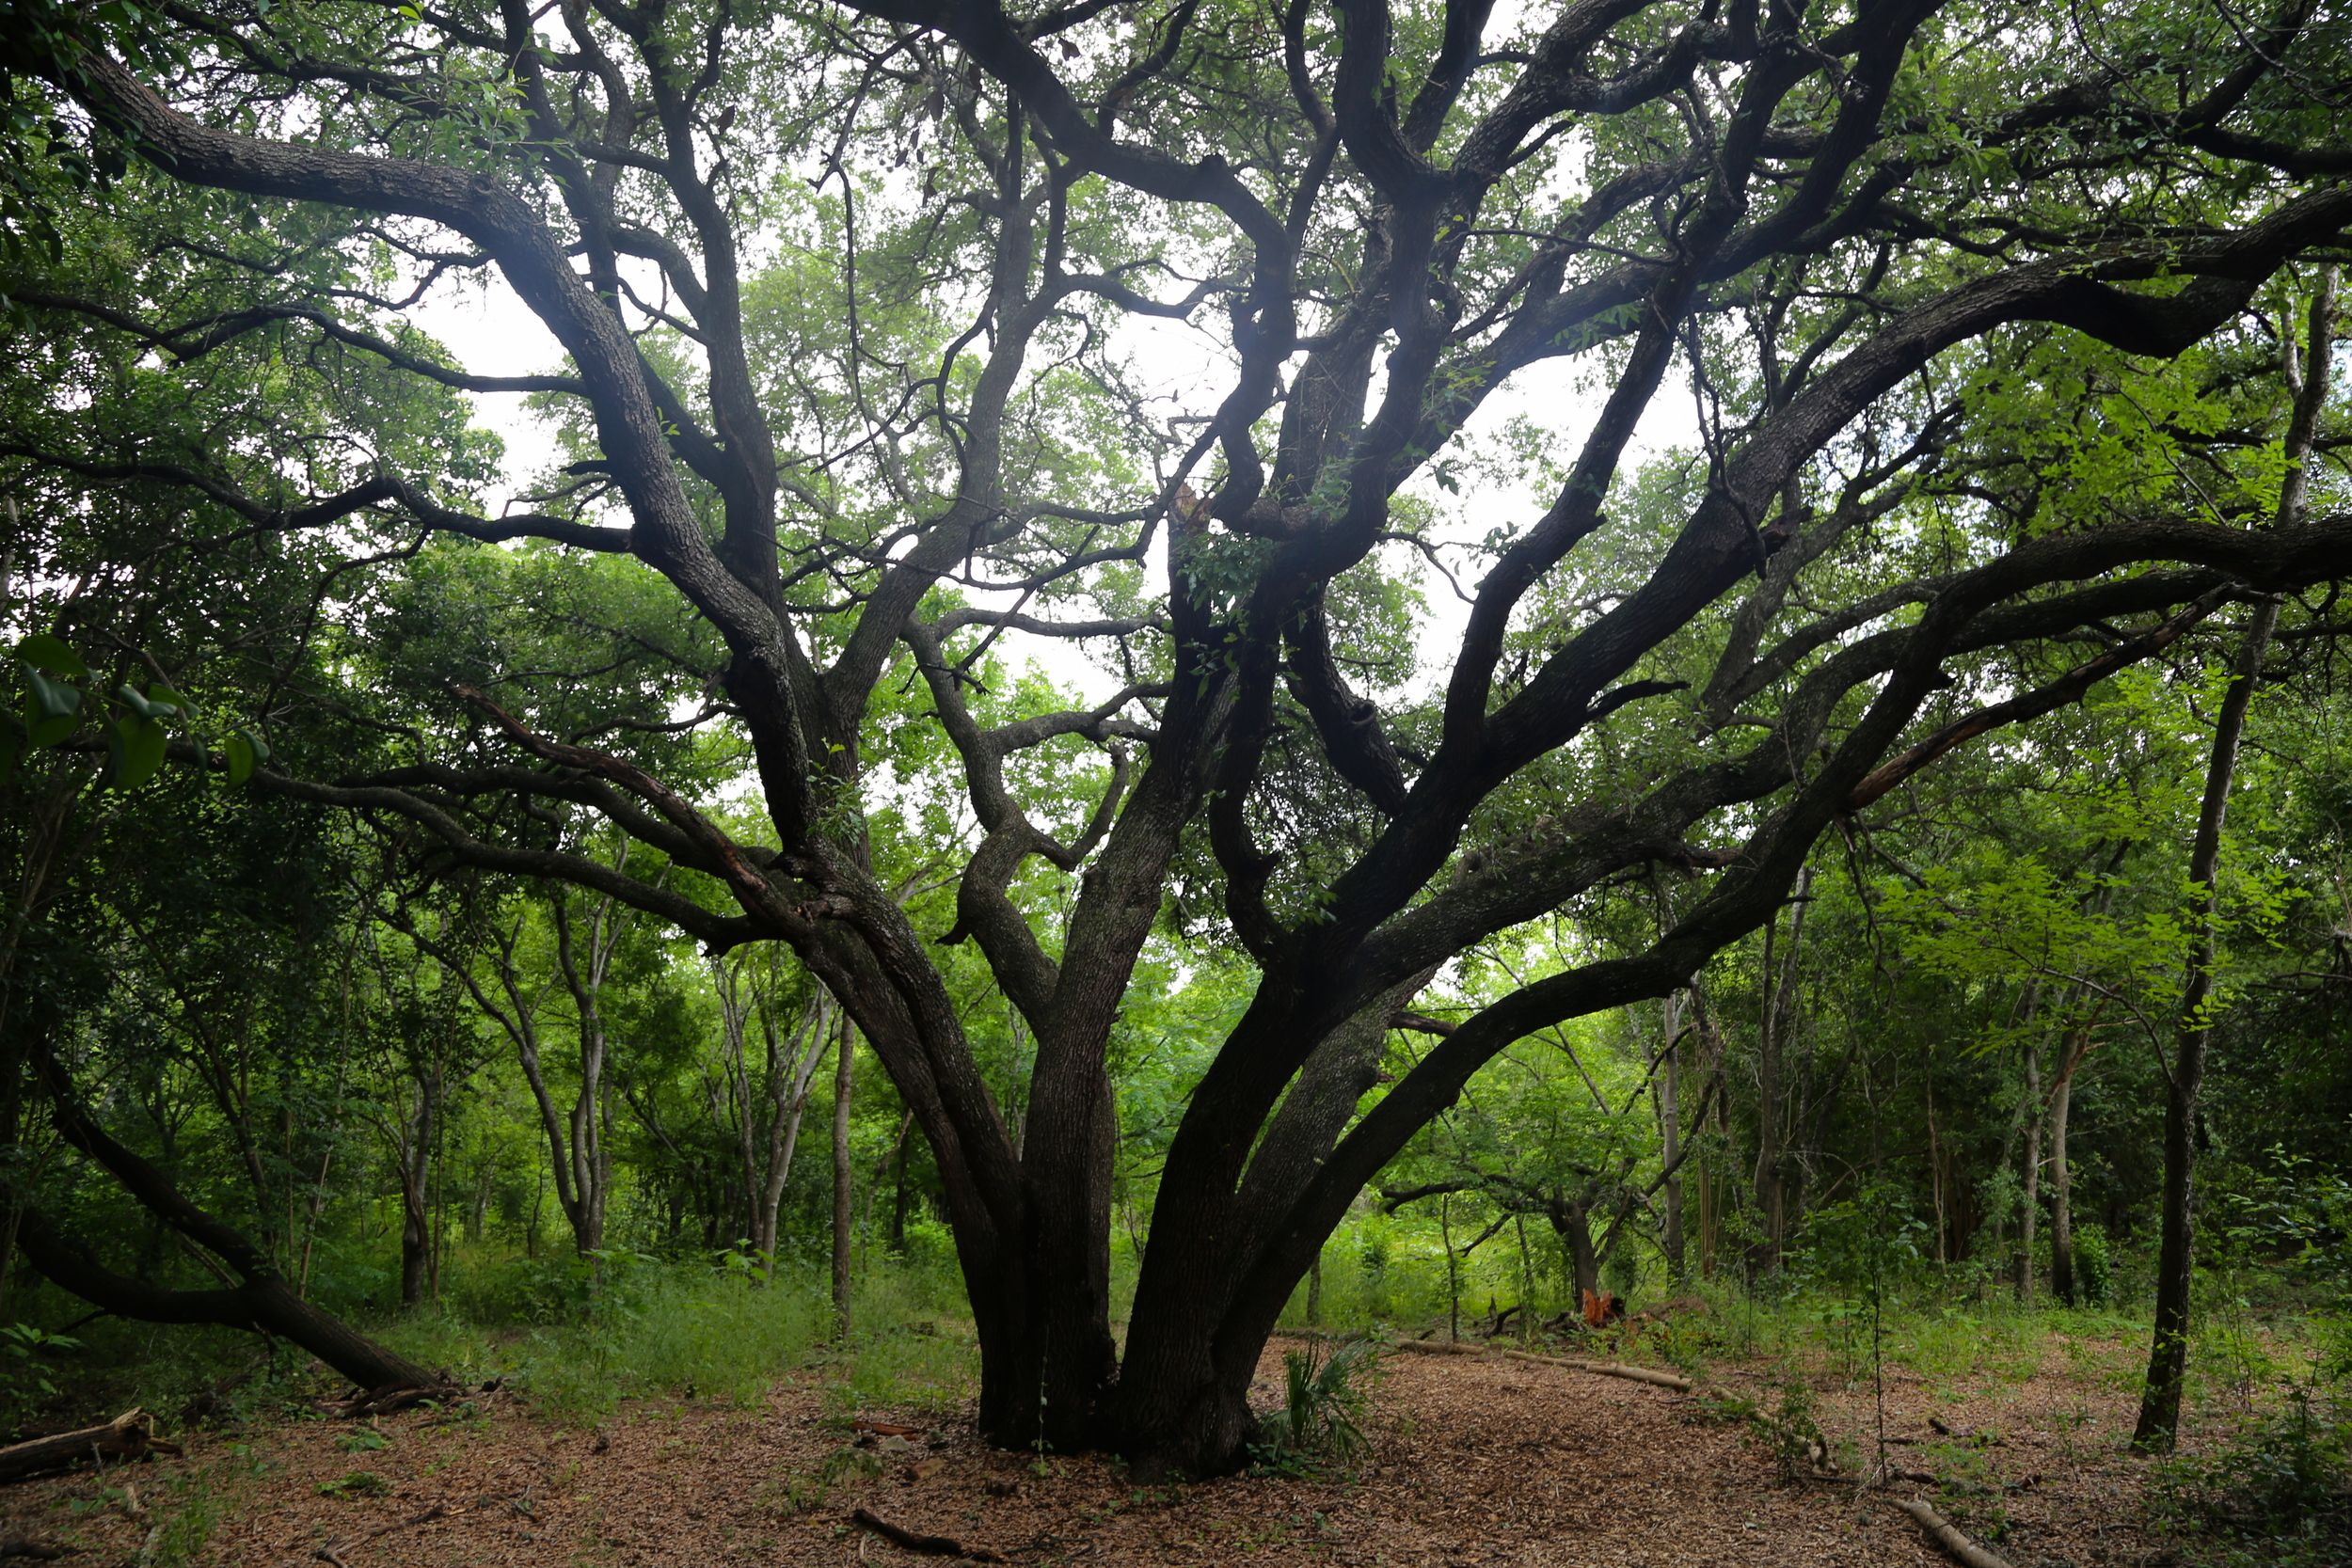 We hiked along a path with a number of gorgeous old oak trees. Whereas these trees allow light to reach the forest floor, some invasive trees in this region have dense canopies that block light below, preventing growth of other native species.